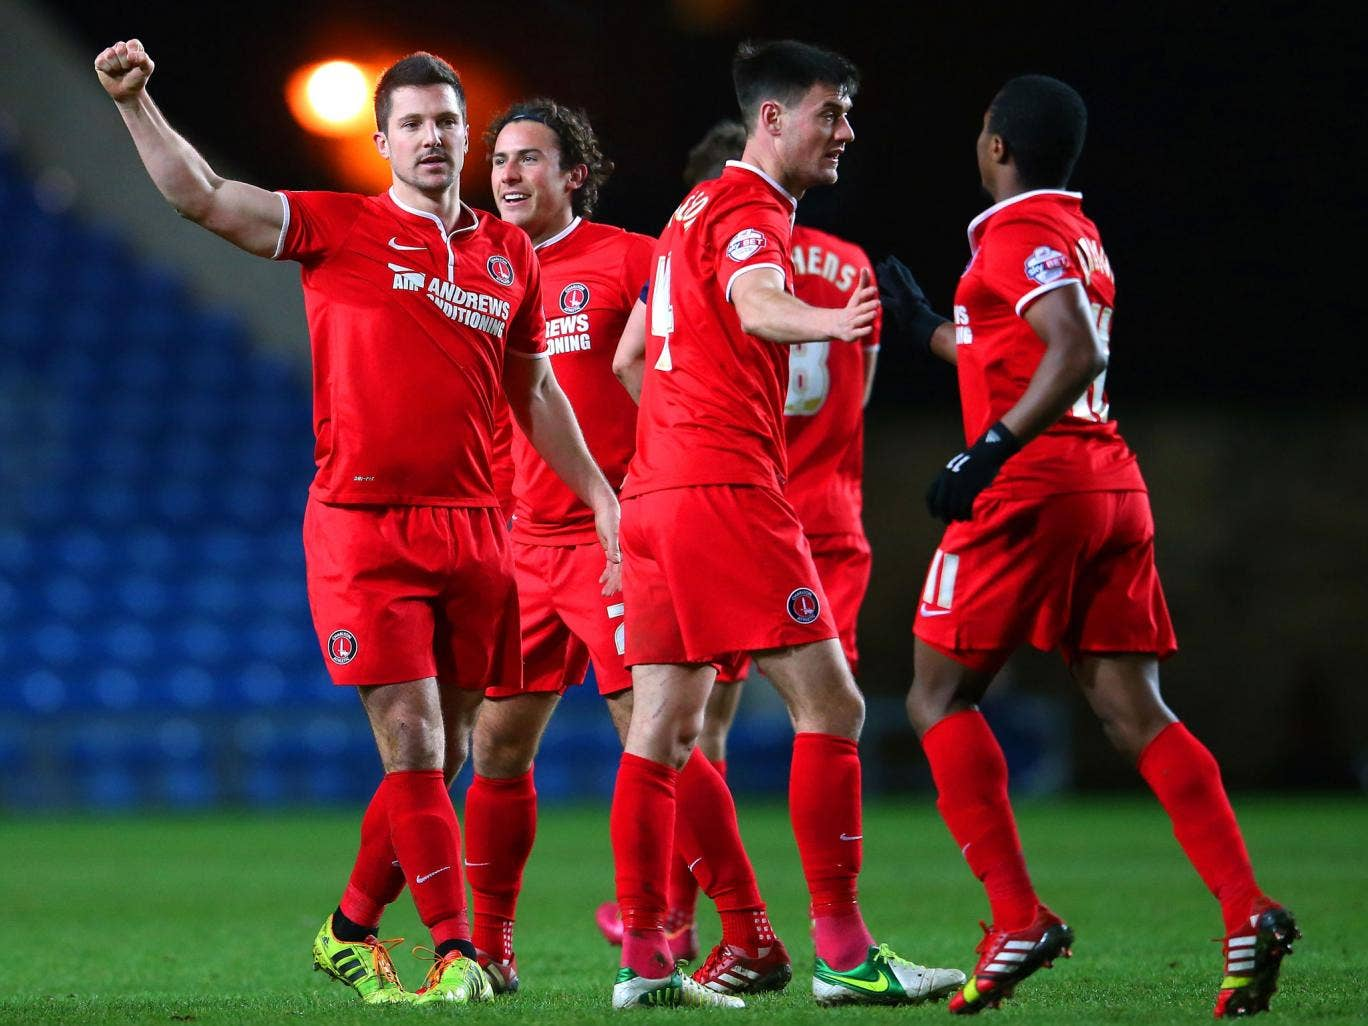 Charlton Athletic players celebrate after the FA Cup win over Oxford